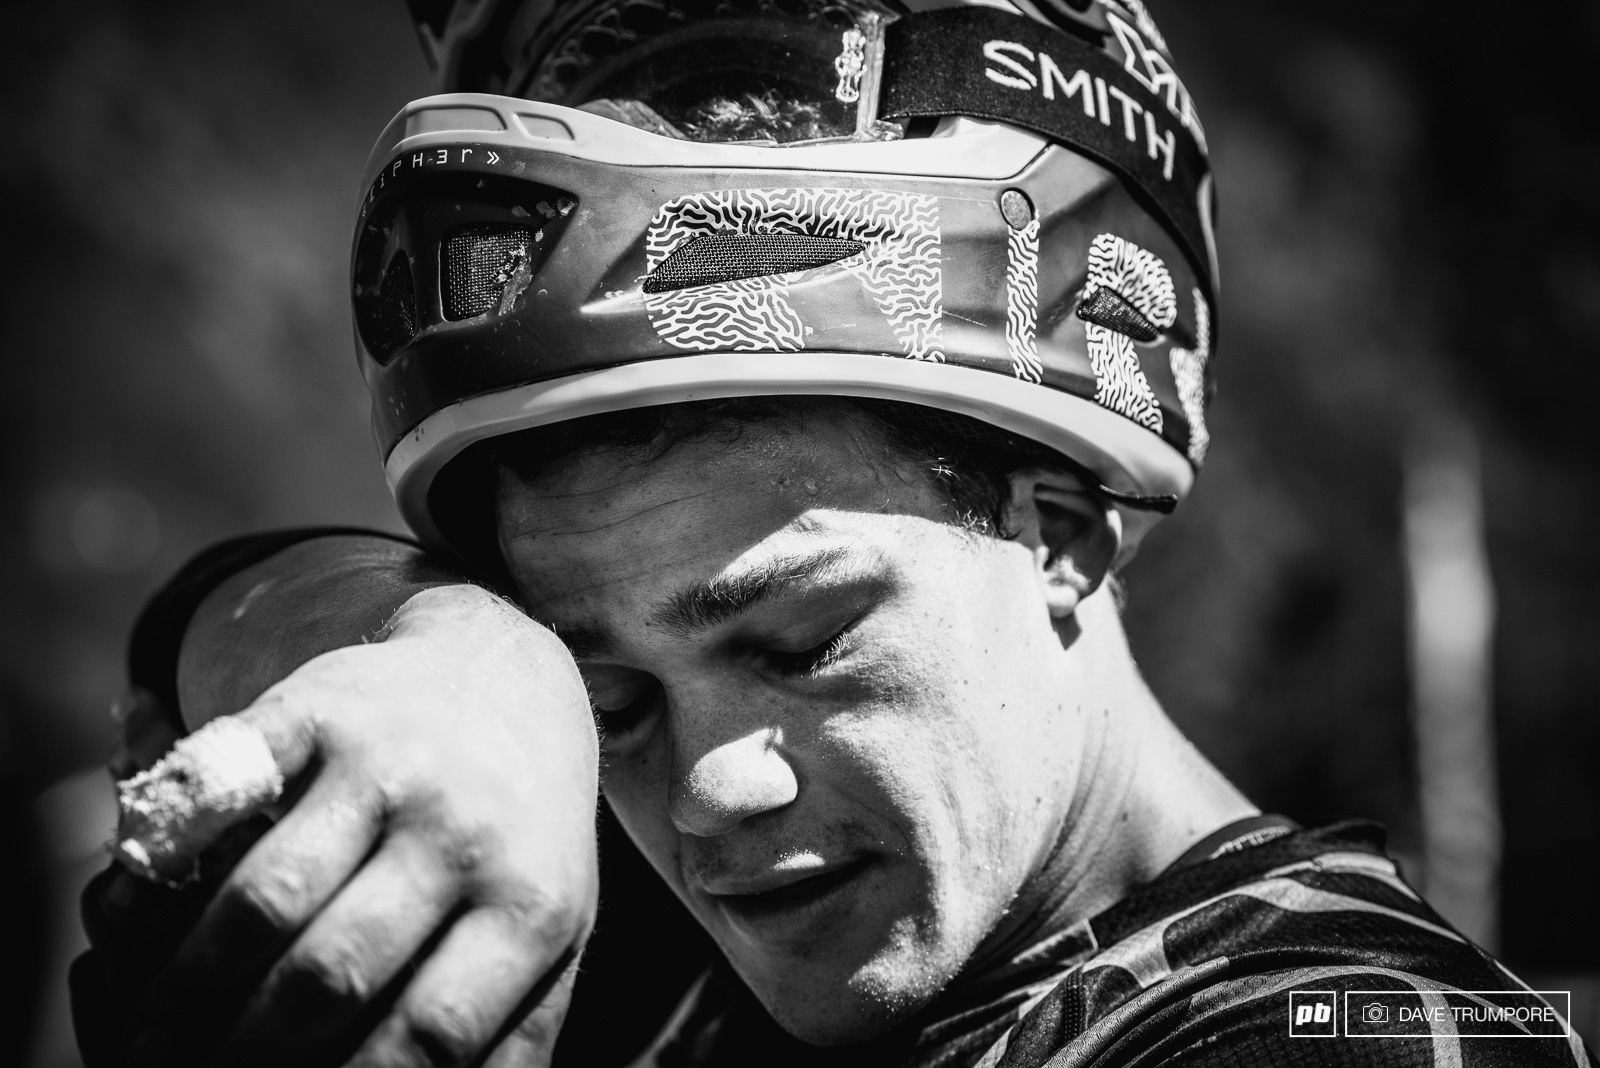 Even with a massive lead after day one Richie had no intentions of letting up. His goal has been to the first male to make a clean sweep of all stages on an EWS weekend but a charging Sam Hill on stage five foiled his plan by less than one second.